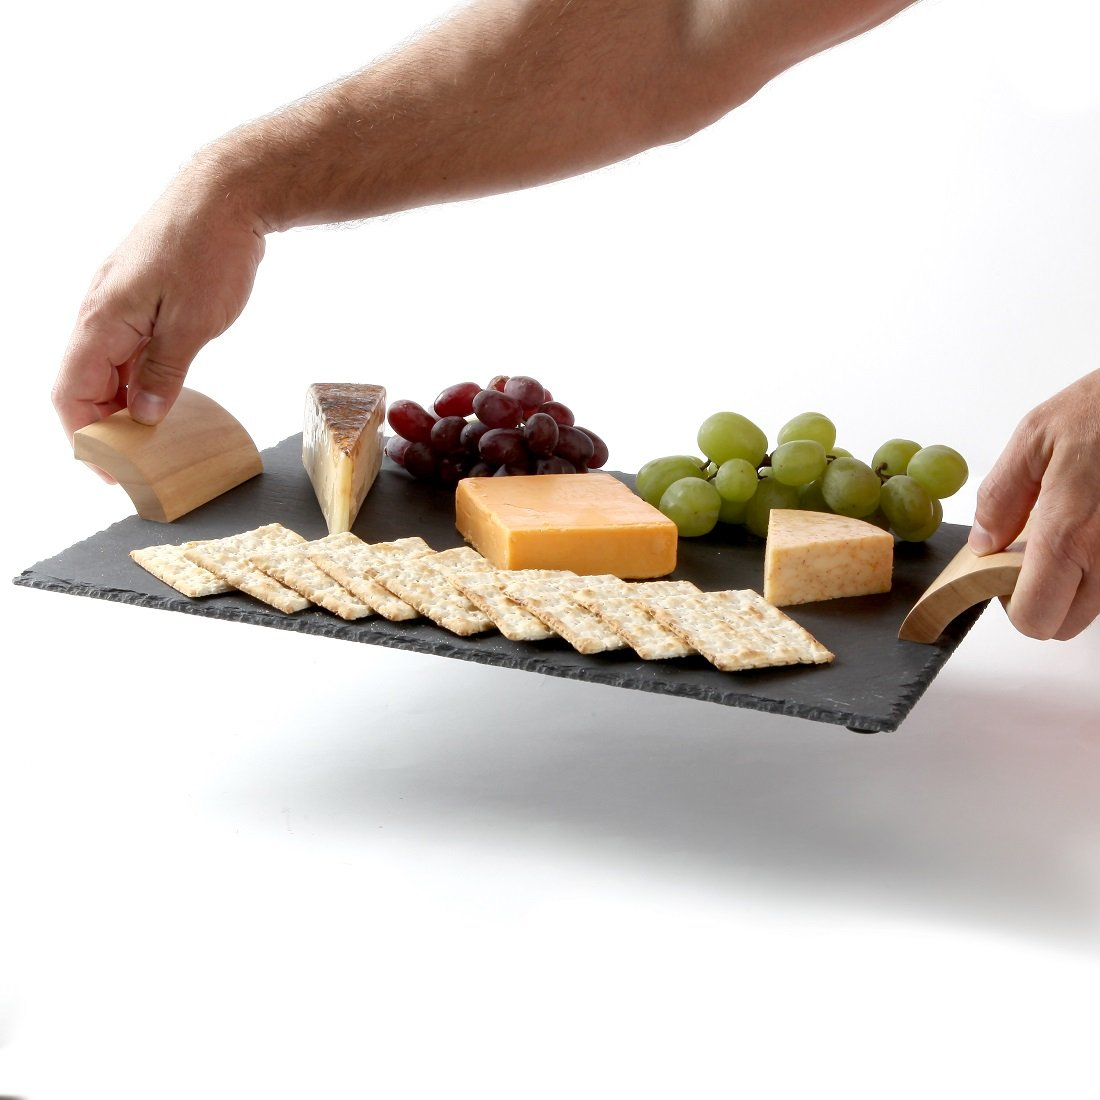 Lily's Home Rustic Slate Cheese Board with Wooden Handles and Chalk, Cheese Tray, 16 X 12 Inch. by Lily's (Image #3)